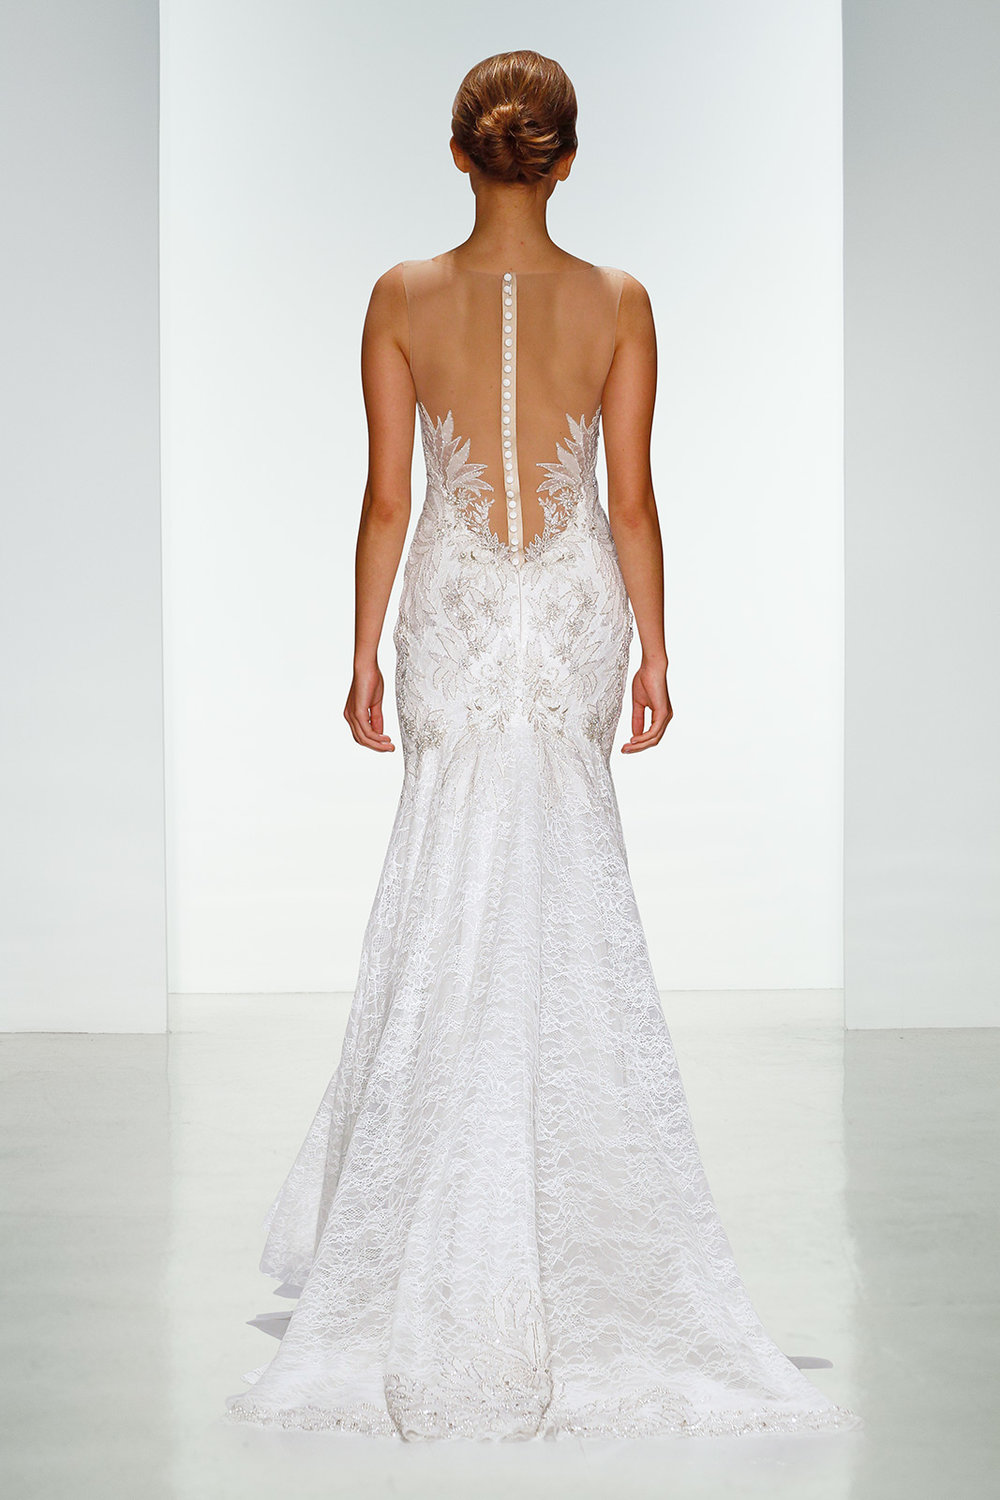 Season: Spring 2016    Gown name: Nica    Description: A strapless trumpet gown in embroidered chantilly lace.